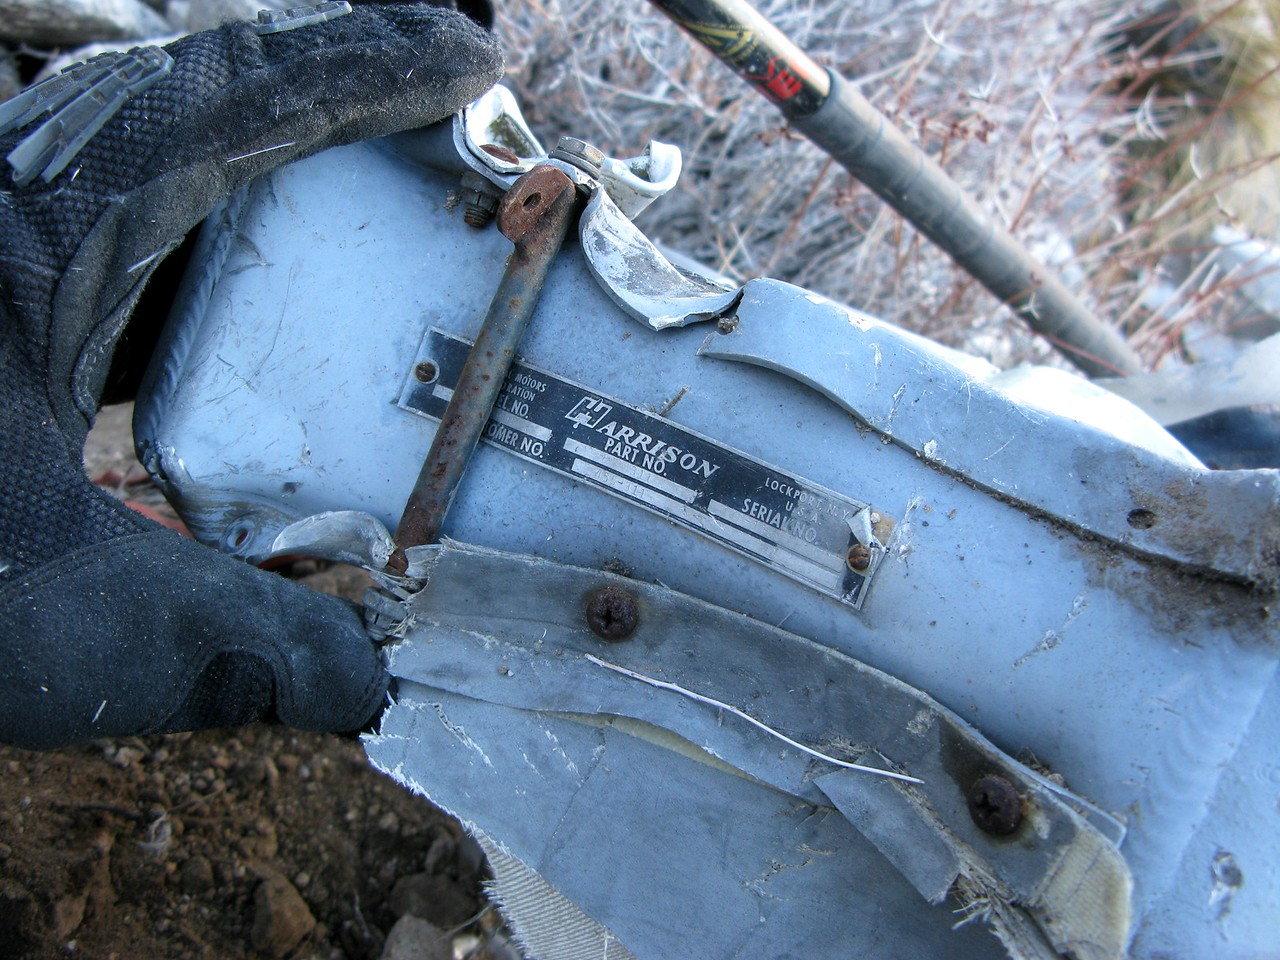 A data tag on the oil cooler identifies the manufacturer as Harrison Industries.